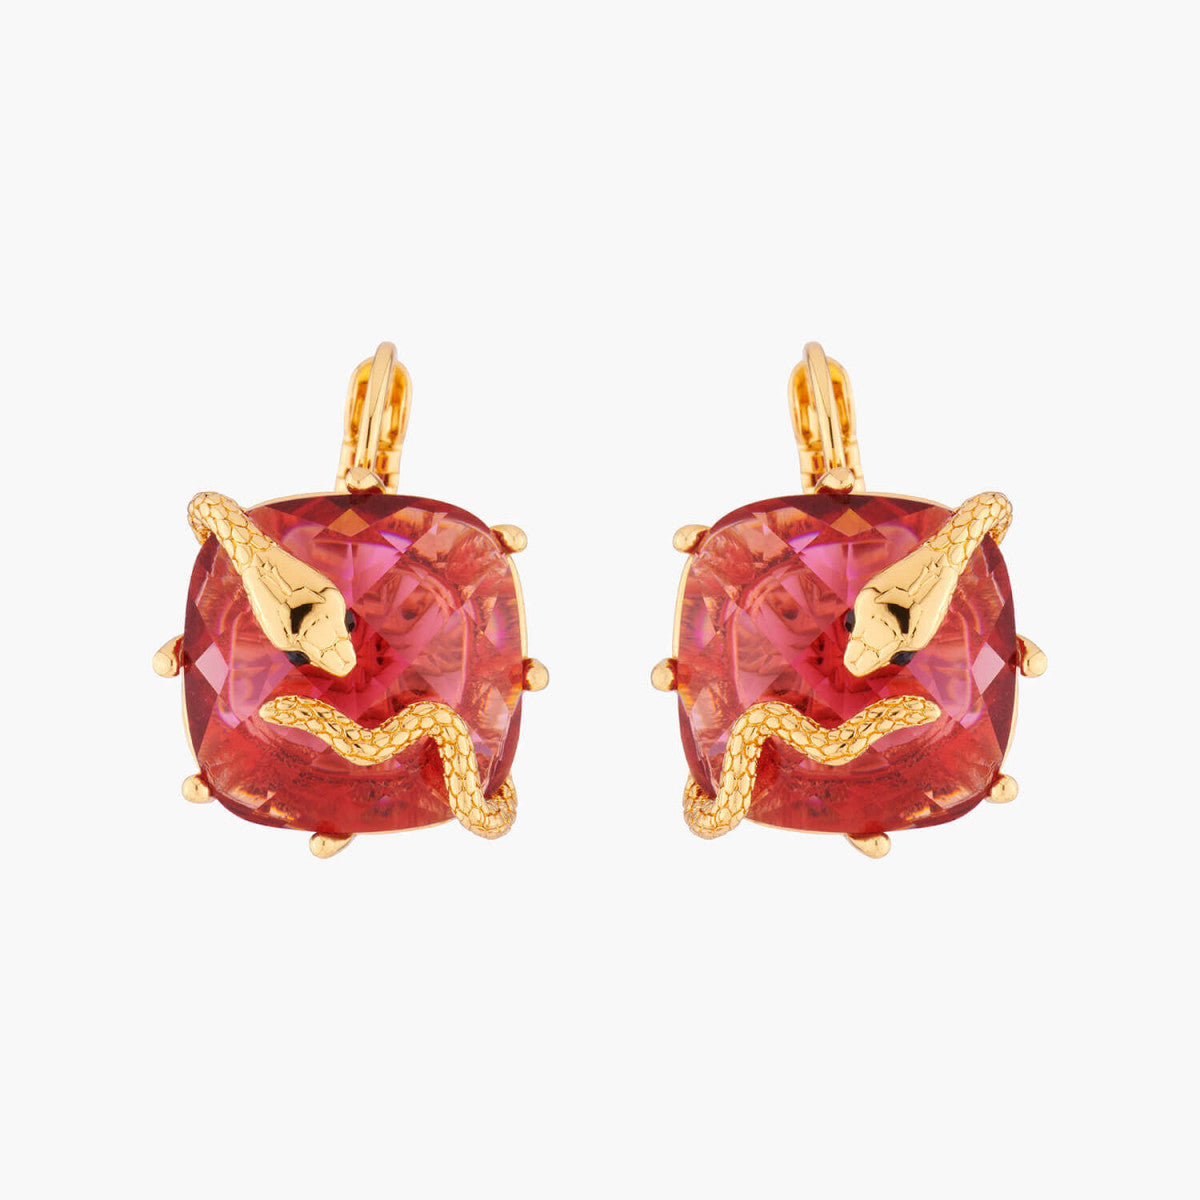 Serpentine Dormeuses Earrings